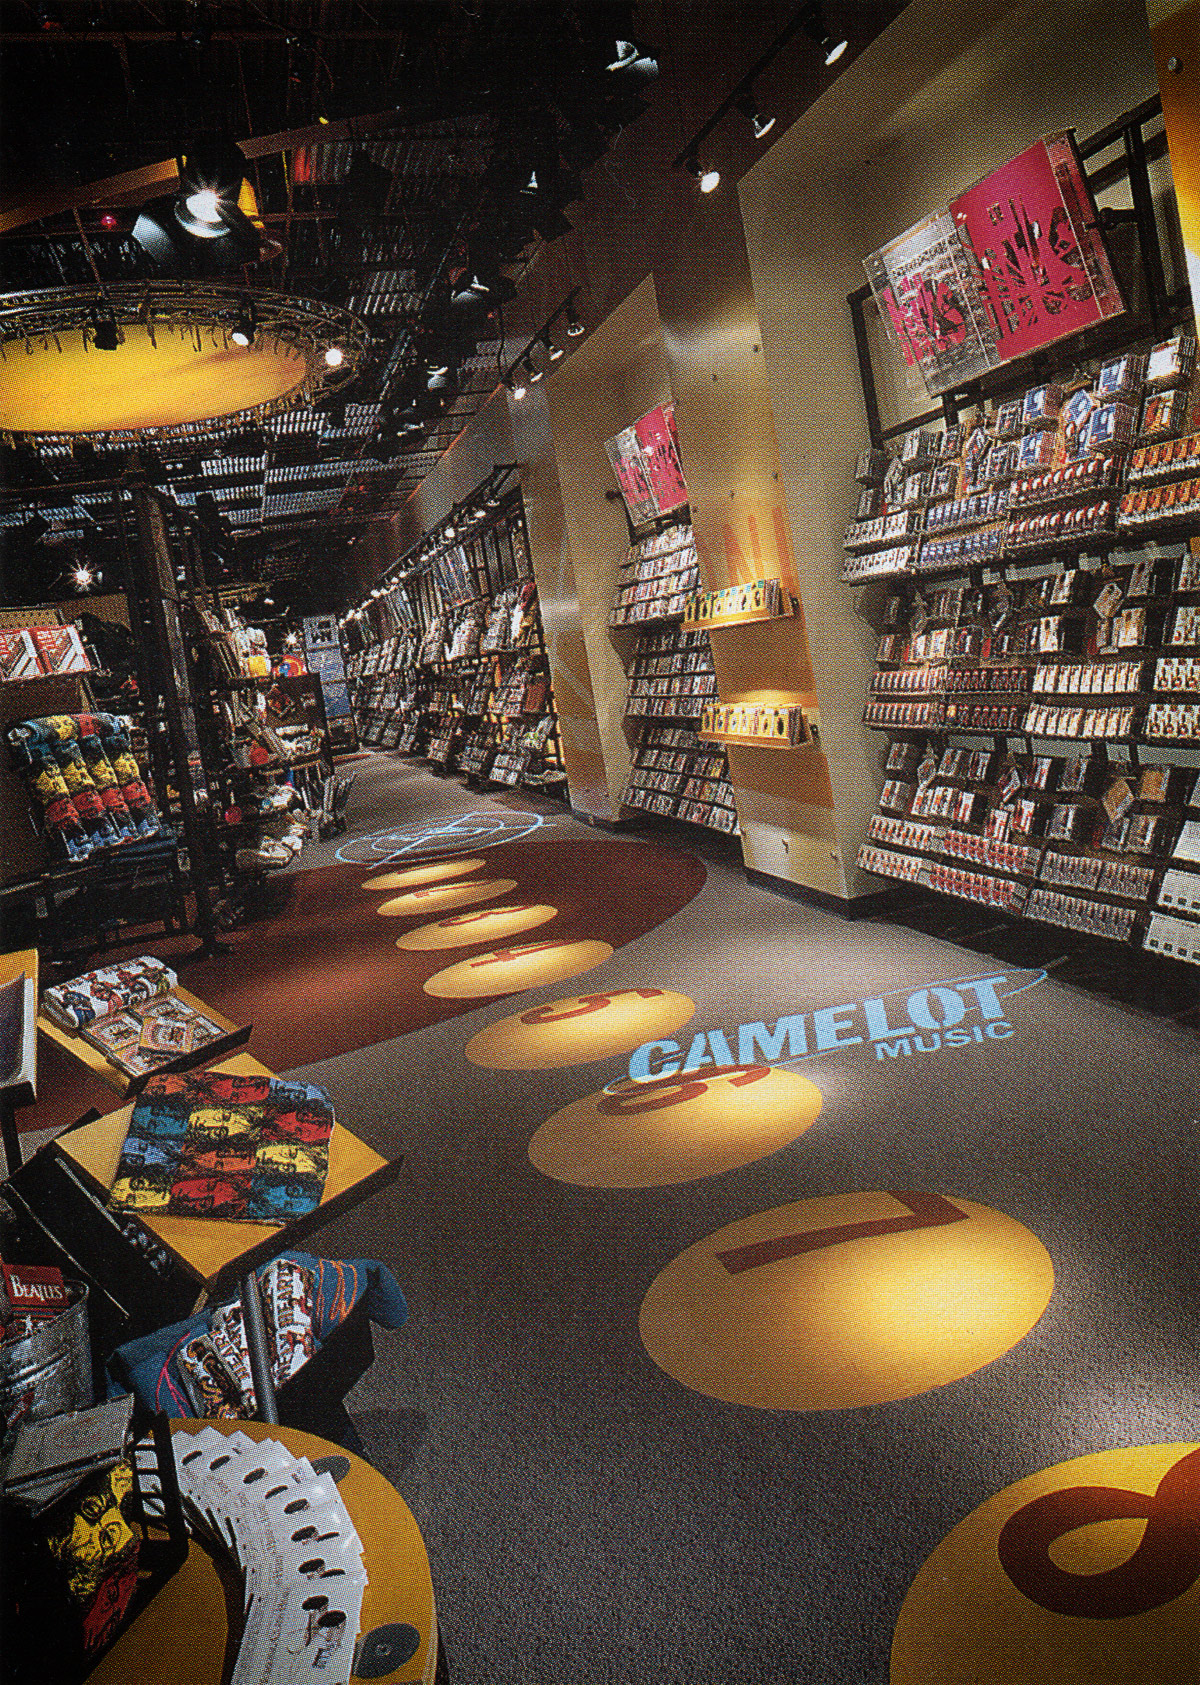 Store Showcase: Camelot Music, Great Lakes Mall, Mentor, Ohio